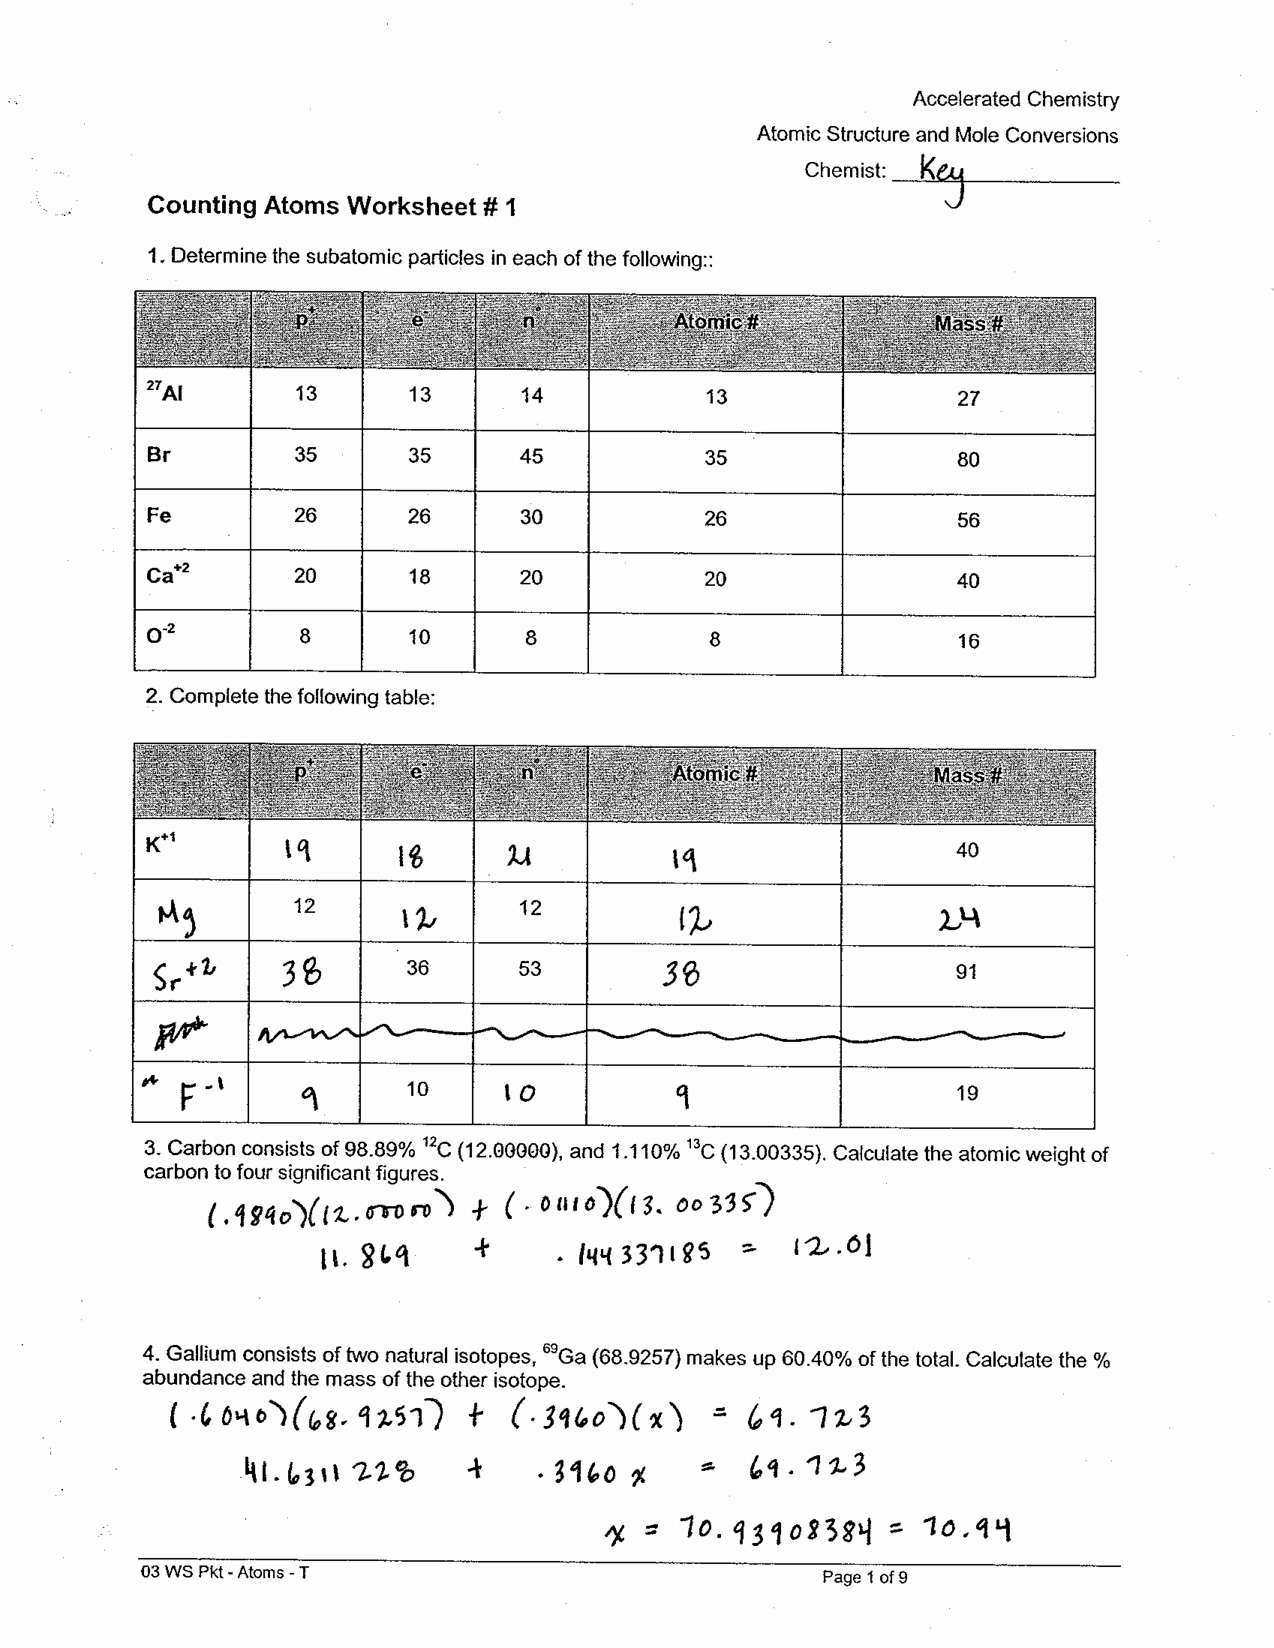 Counting atoms Worksheet Answers New 16 Best Of Molecules and atoms Worksheet Answer Key